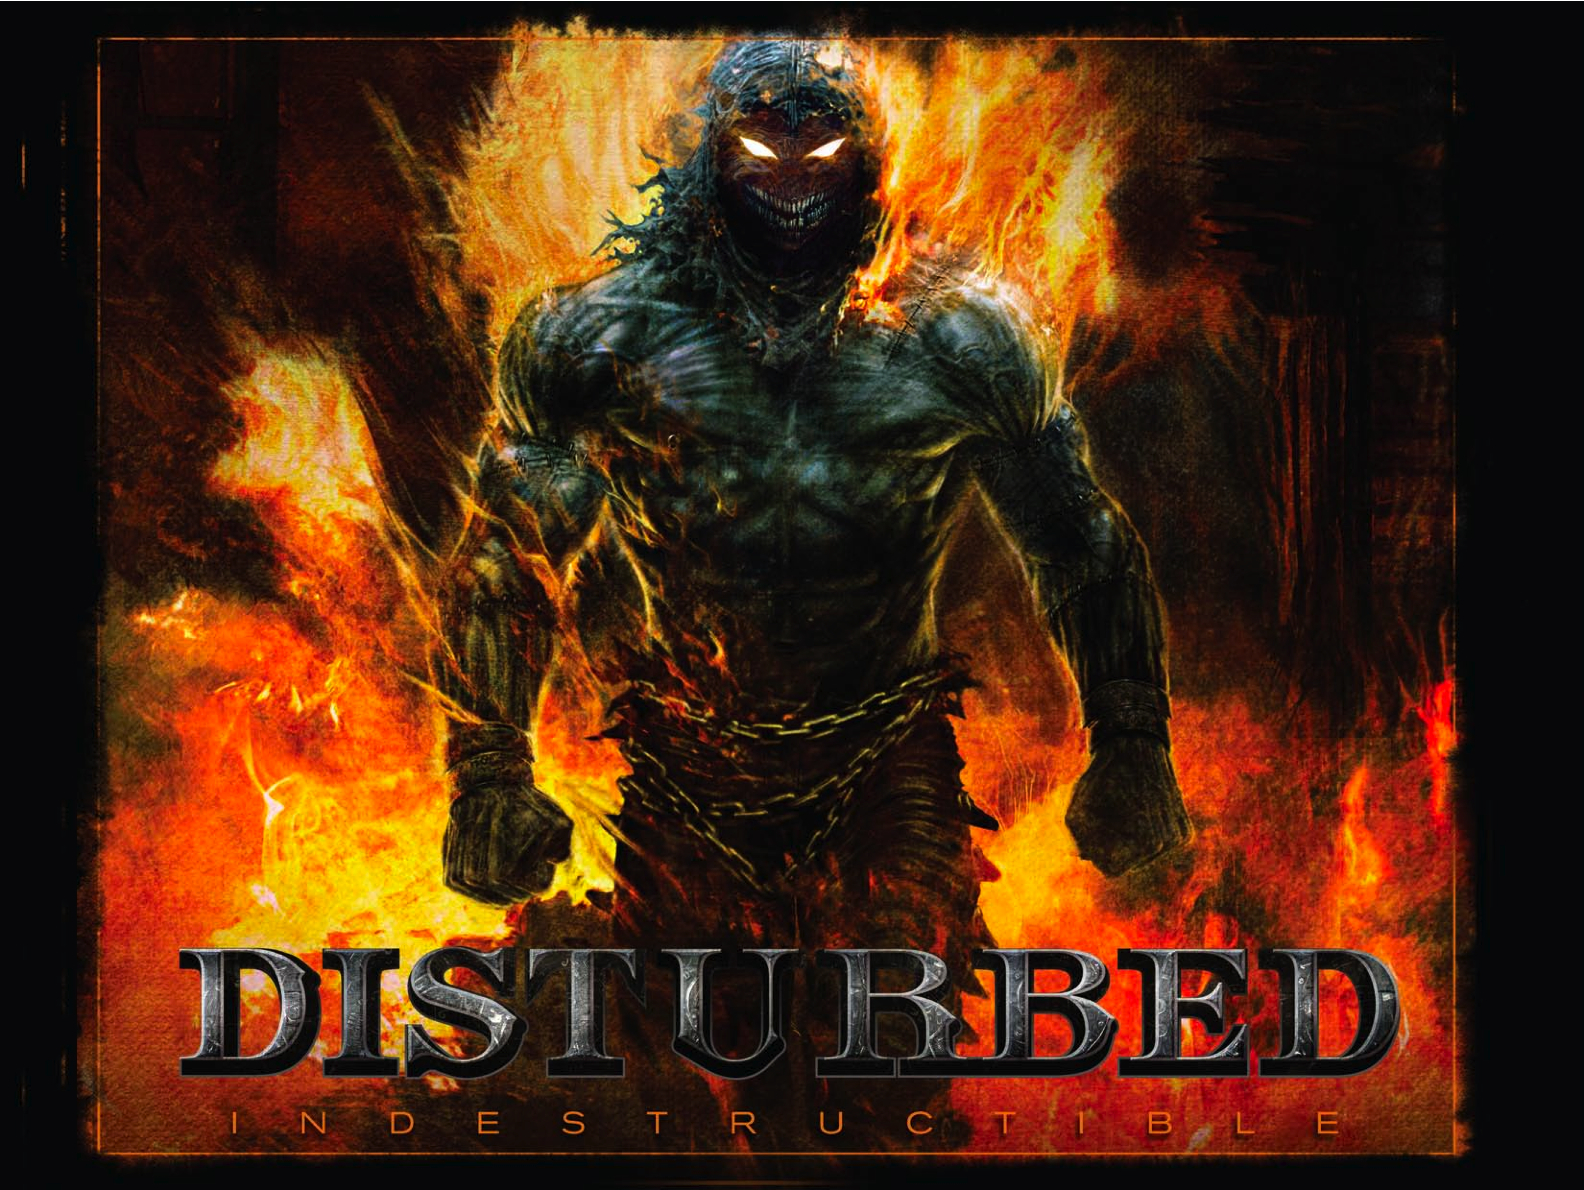 Disturbed indestructible download album covers